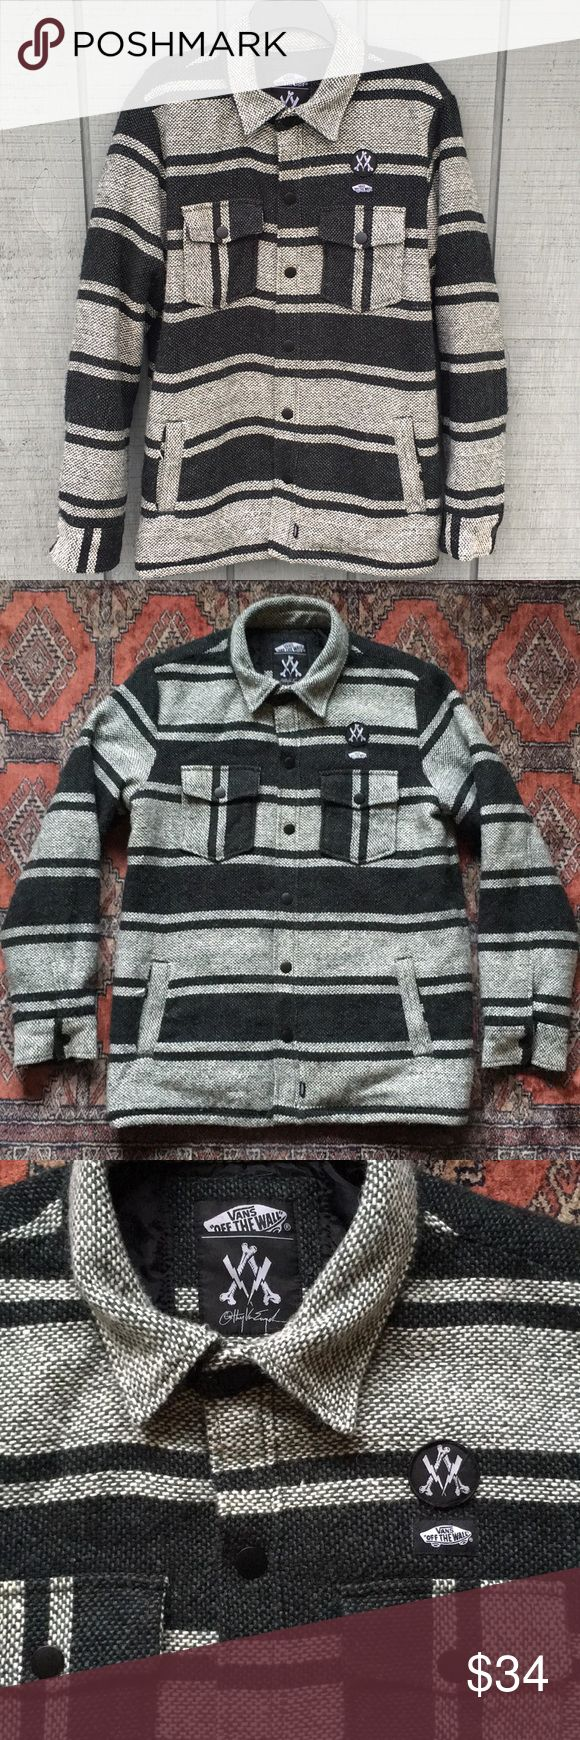 Van's Drug Rug Anthony Van Engelen EDITION Anthony Van Engelen edition Vans drug rug. Size Large. Great condition, see pictures! Very minor piling shows previous wear. Vans Jackets & Coats